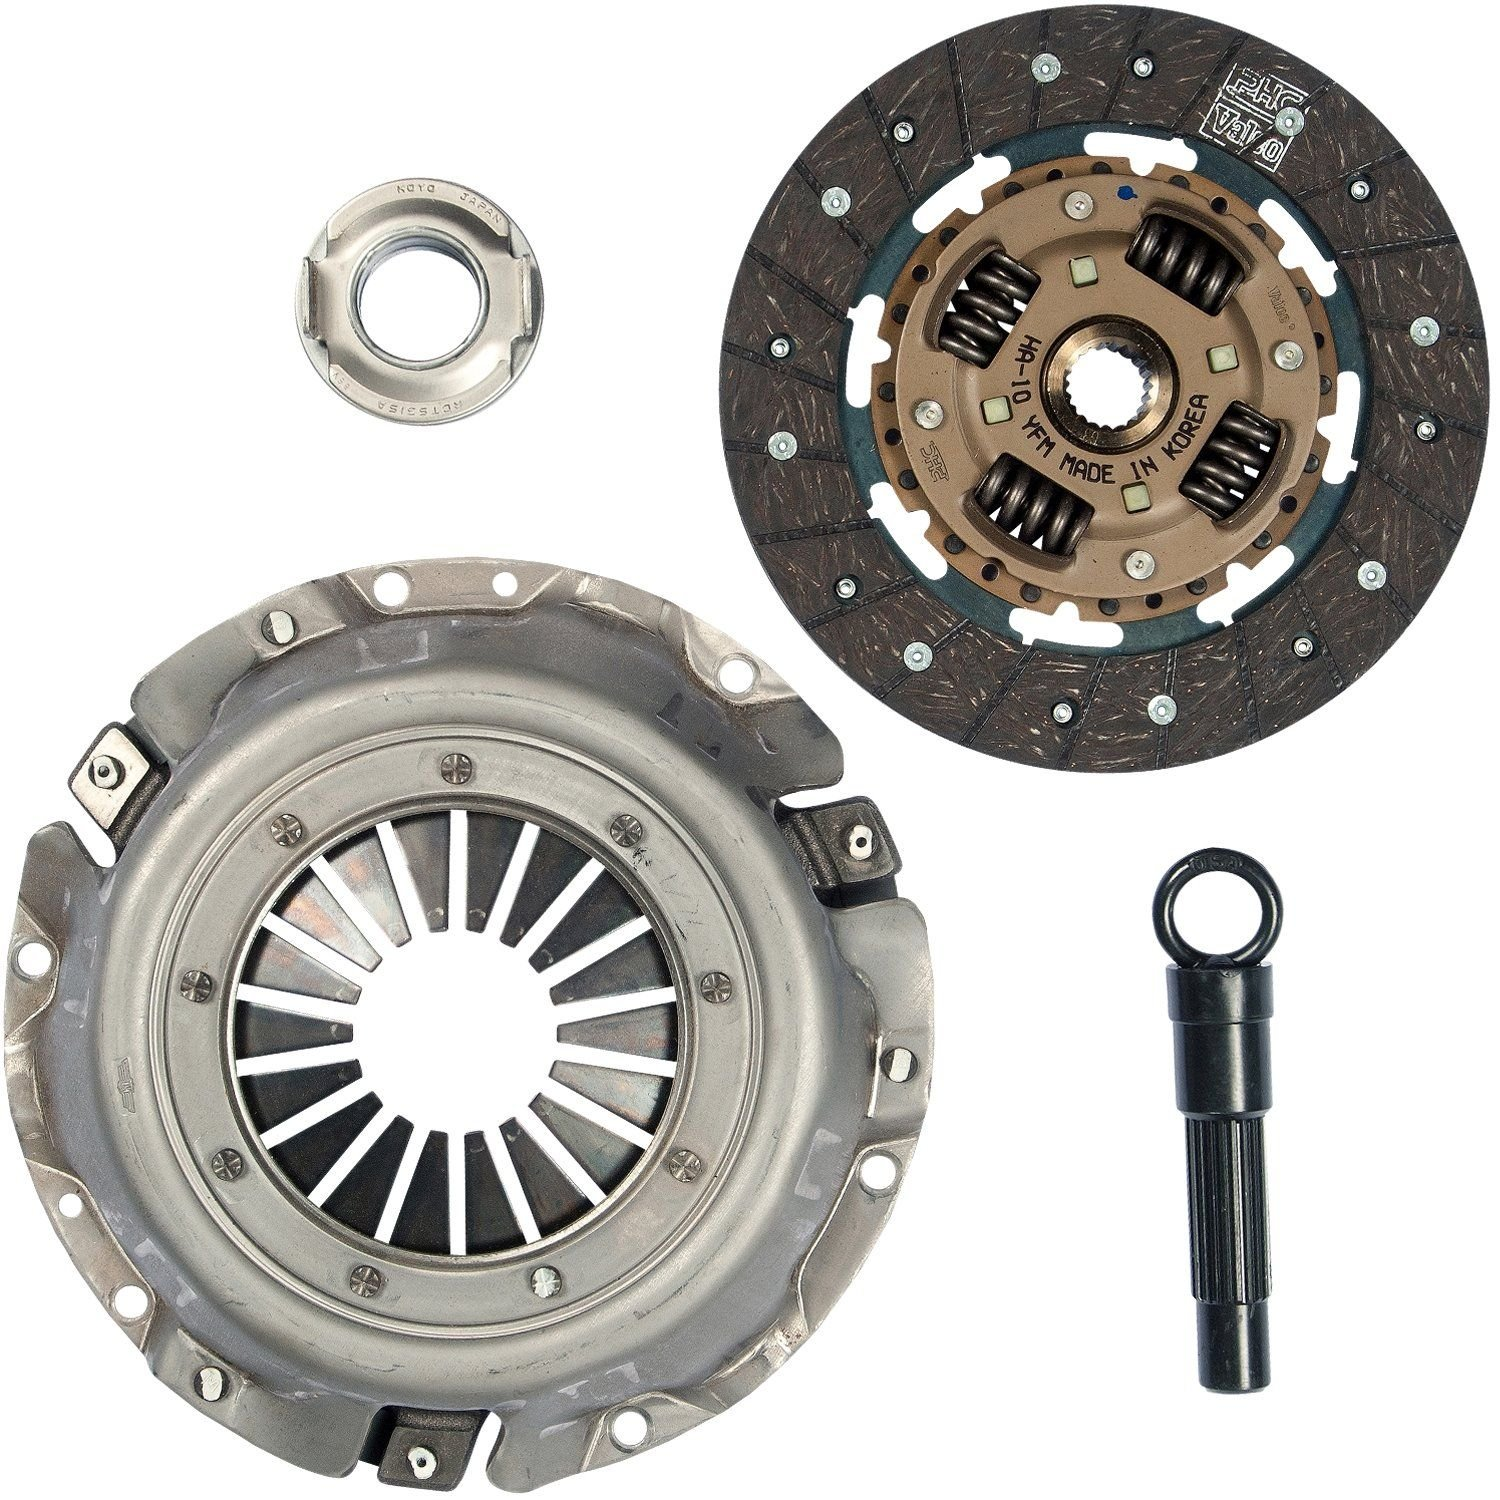 Honda Accord Clutch Kit Replacement Beck Arnley Exedy Genuine Flywheel 1982 4 Cyl 18l Rhino Pac 08 007 Created From Row Number 32566 Spec 003